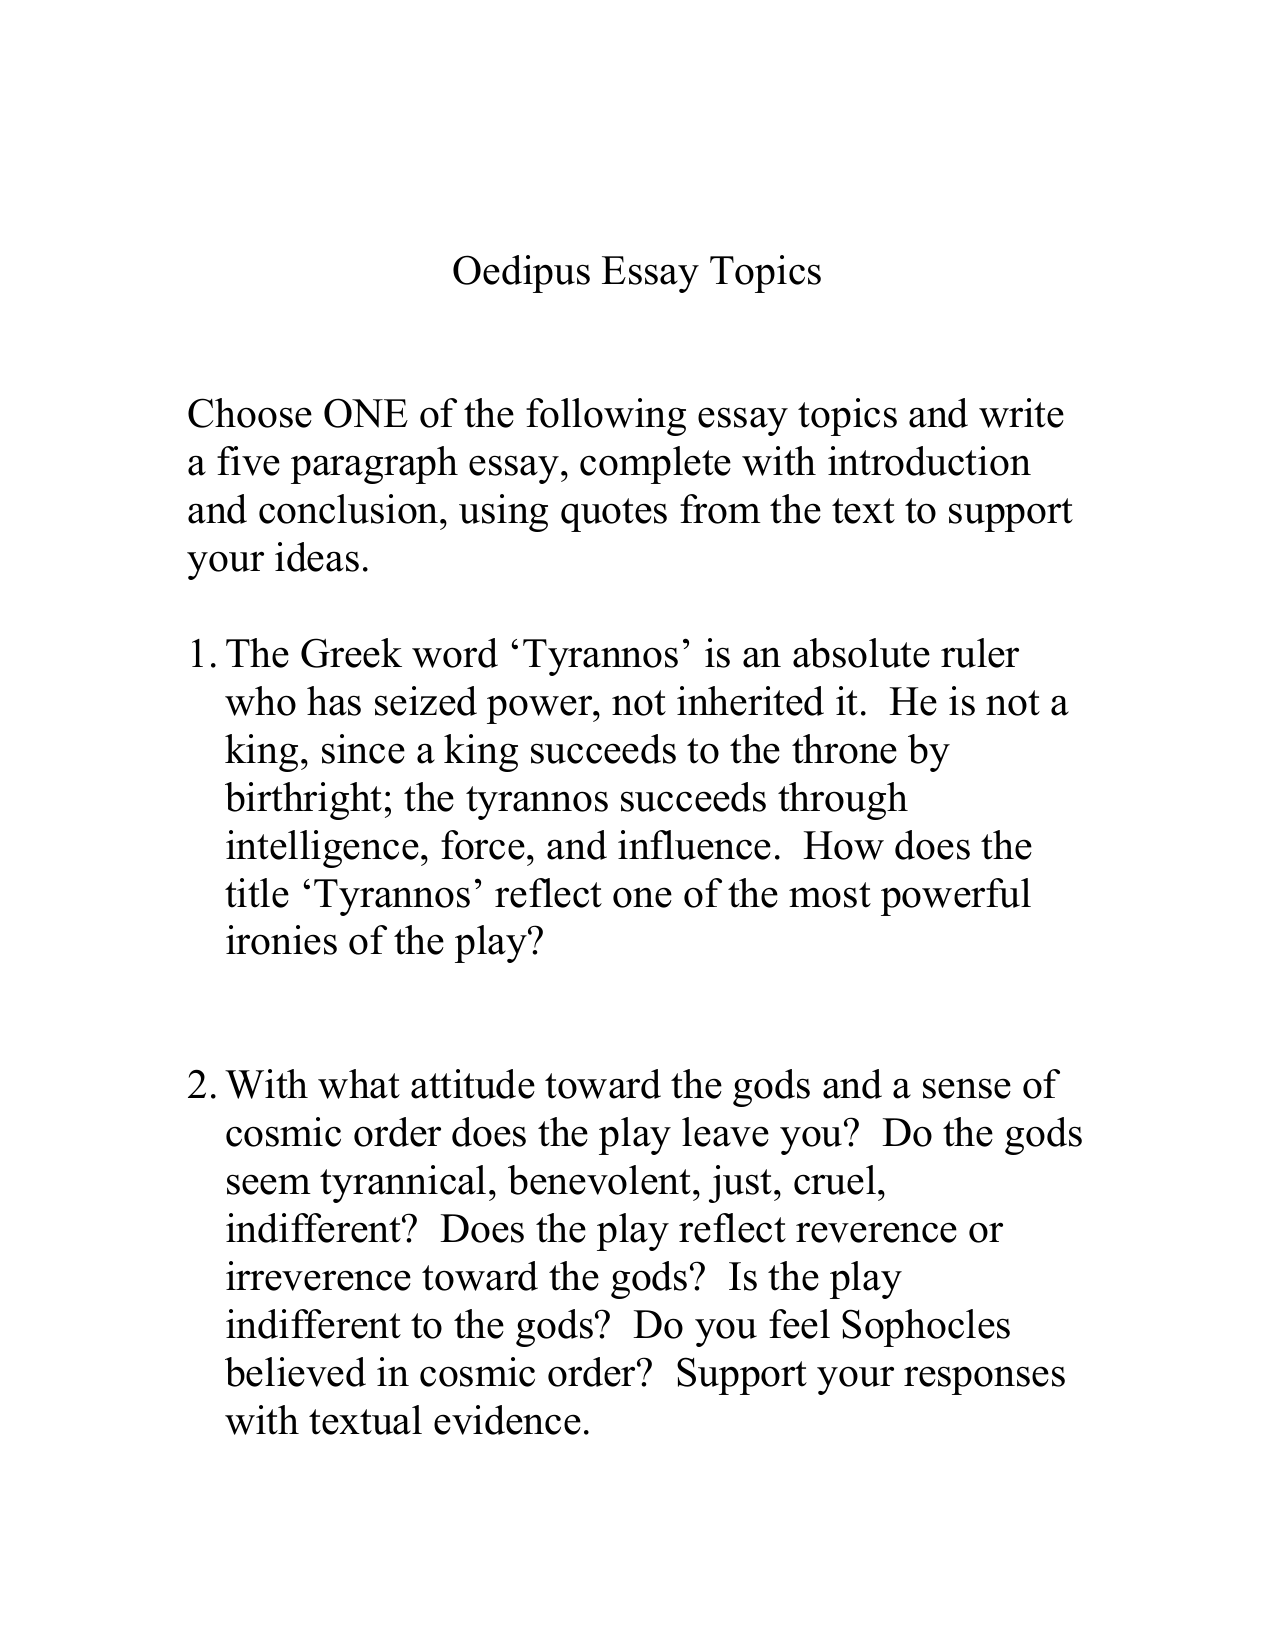 002 010776288 1 Oedipus Essay Beautiful Fate Questions Full